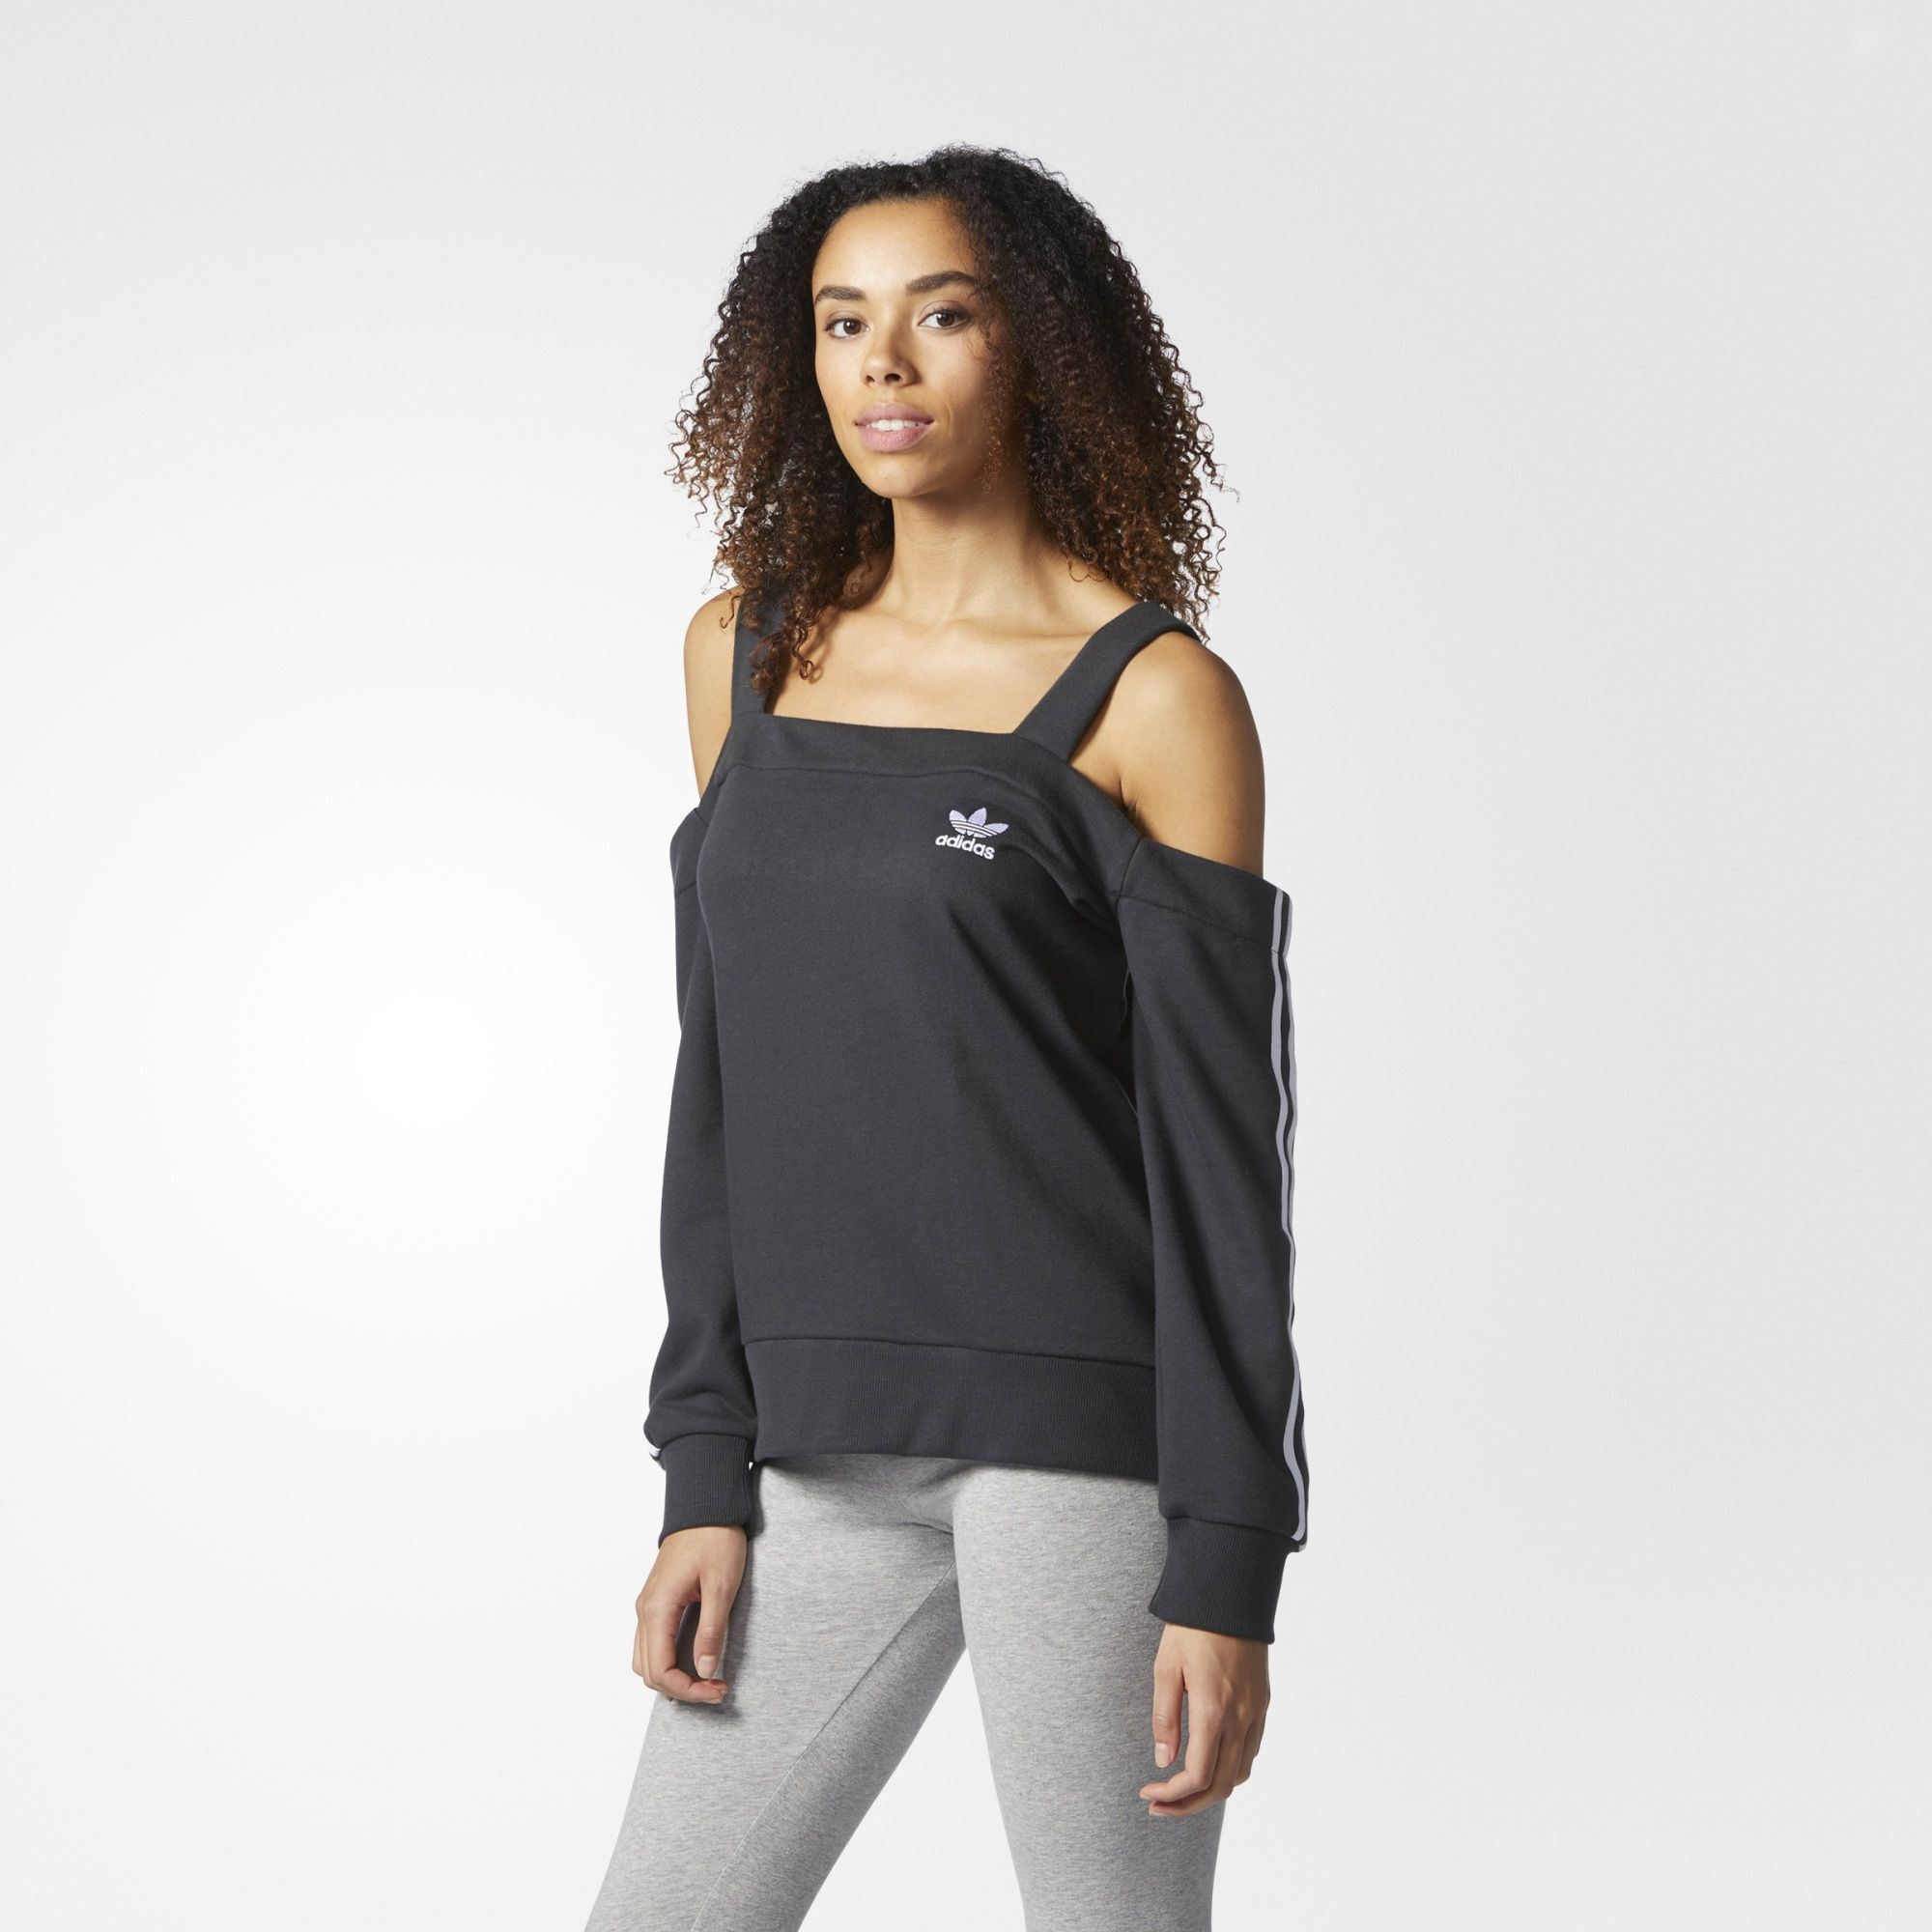 2503a7ed423cd adidas Originals Womens Off-Shoulder Sweatshirt Sweater Jumper Pullover  Top. All sizes listed are UK. See sizing tab below for conversions.